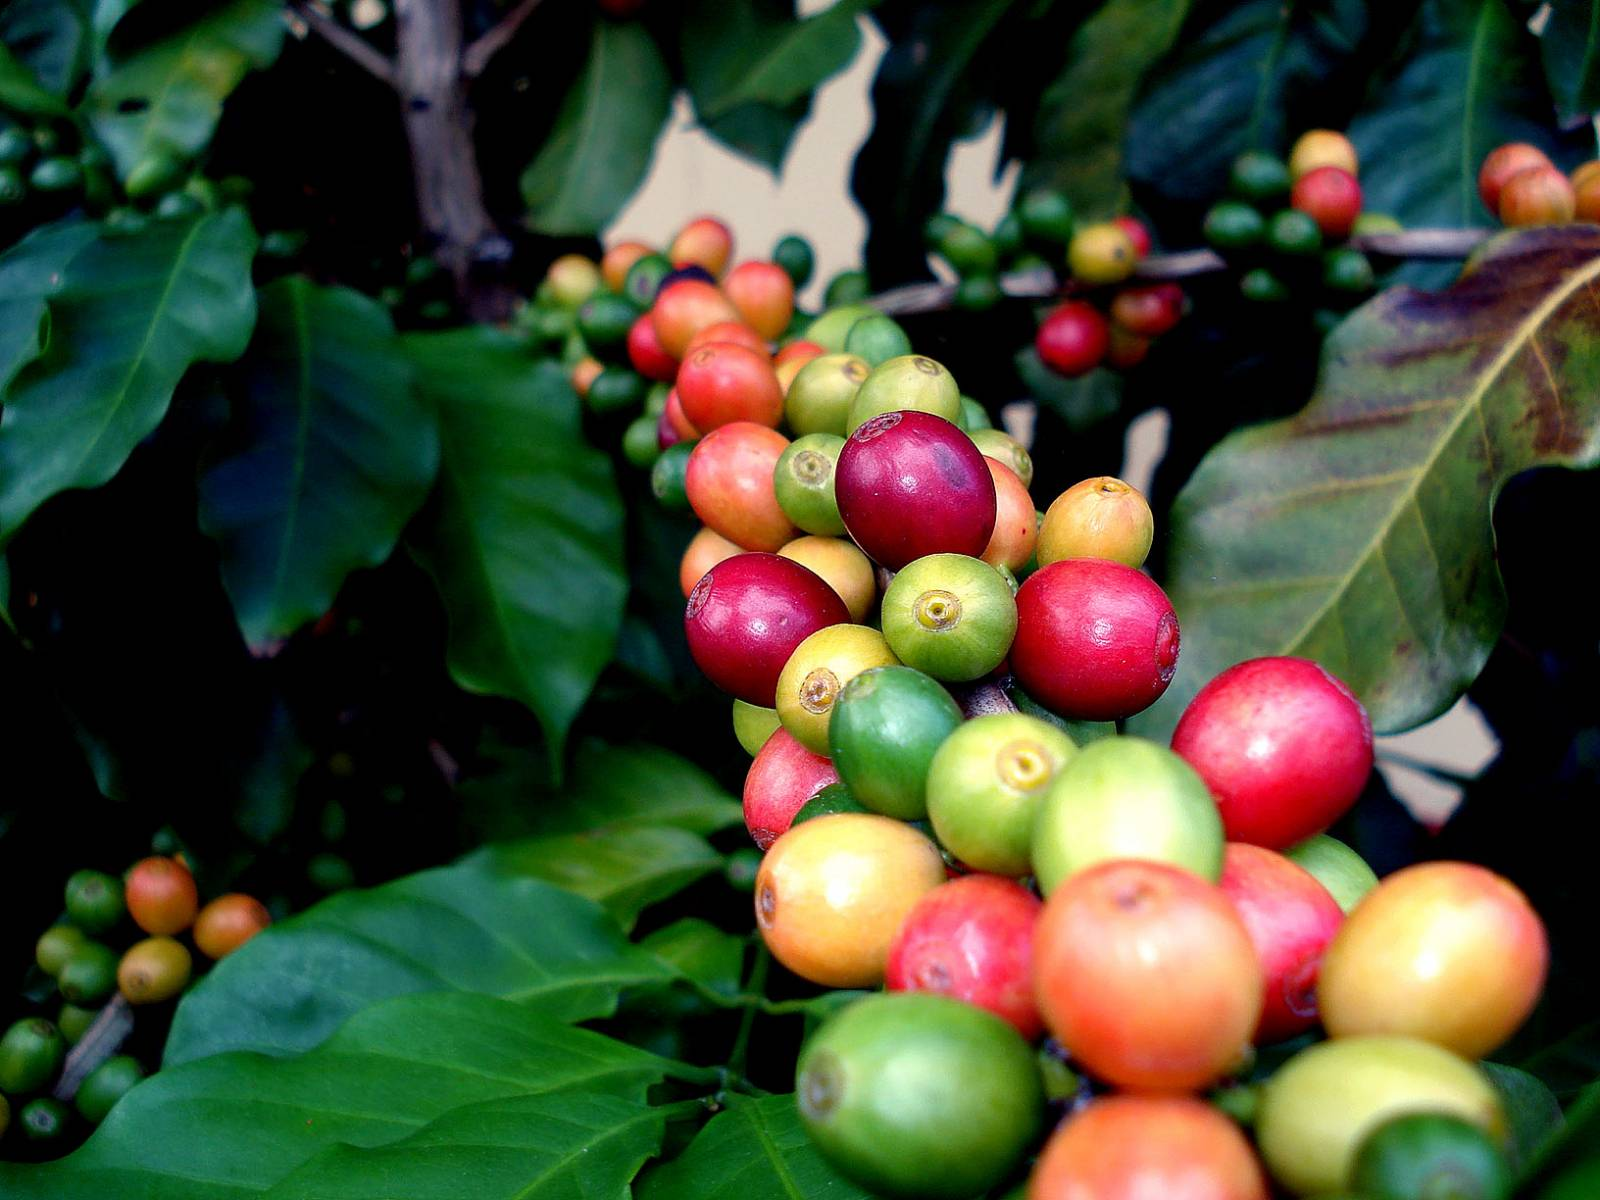 Coffee Tree - Source: FreeImages.com/Eziquel (zick) Boita